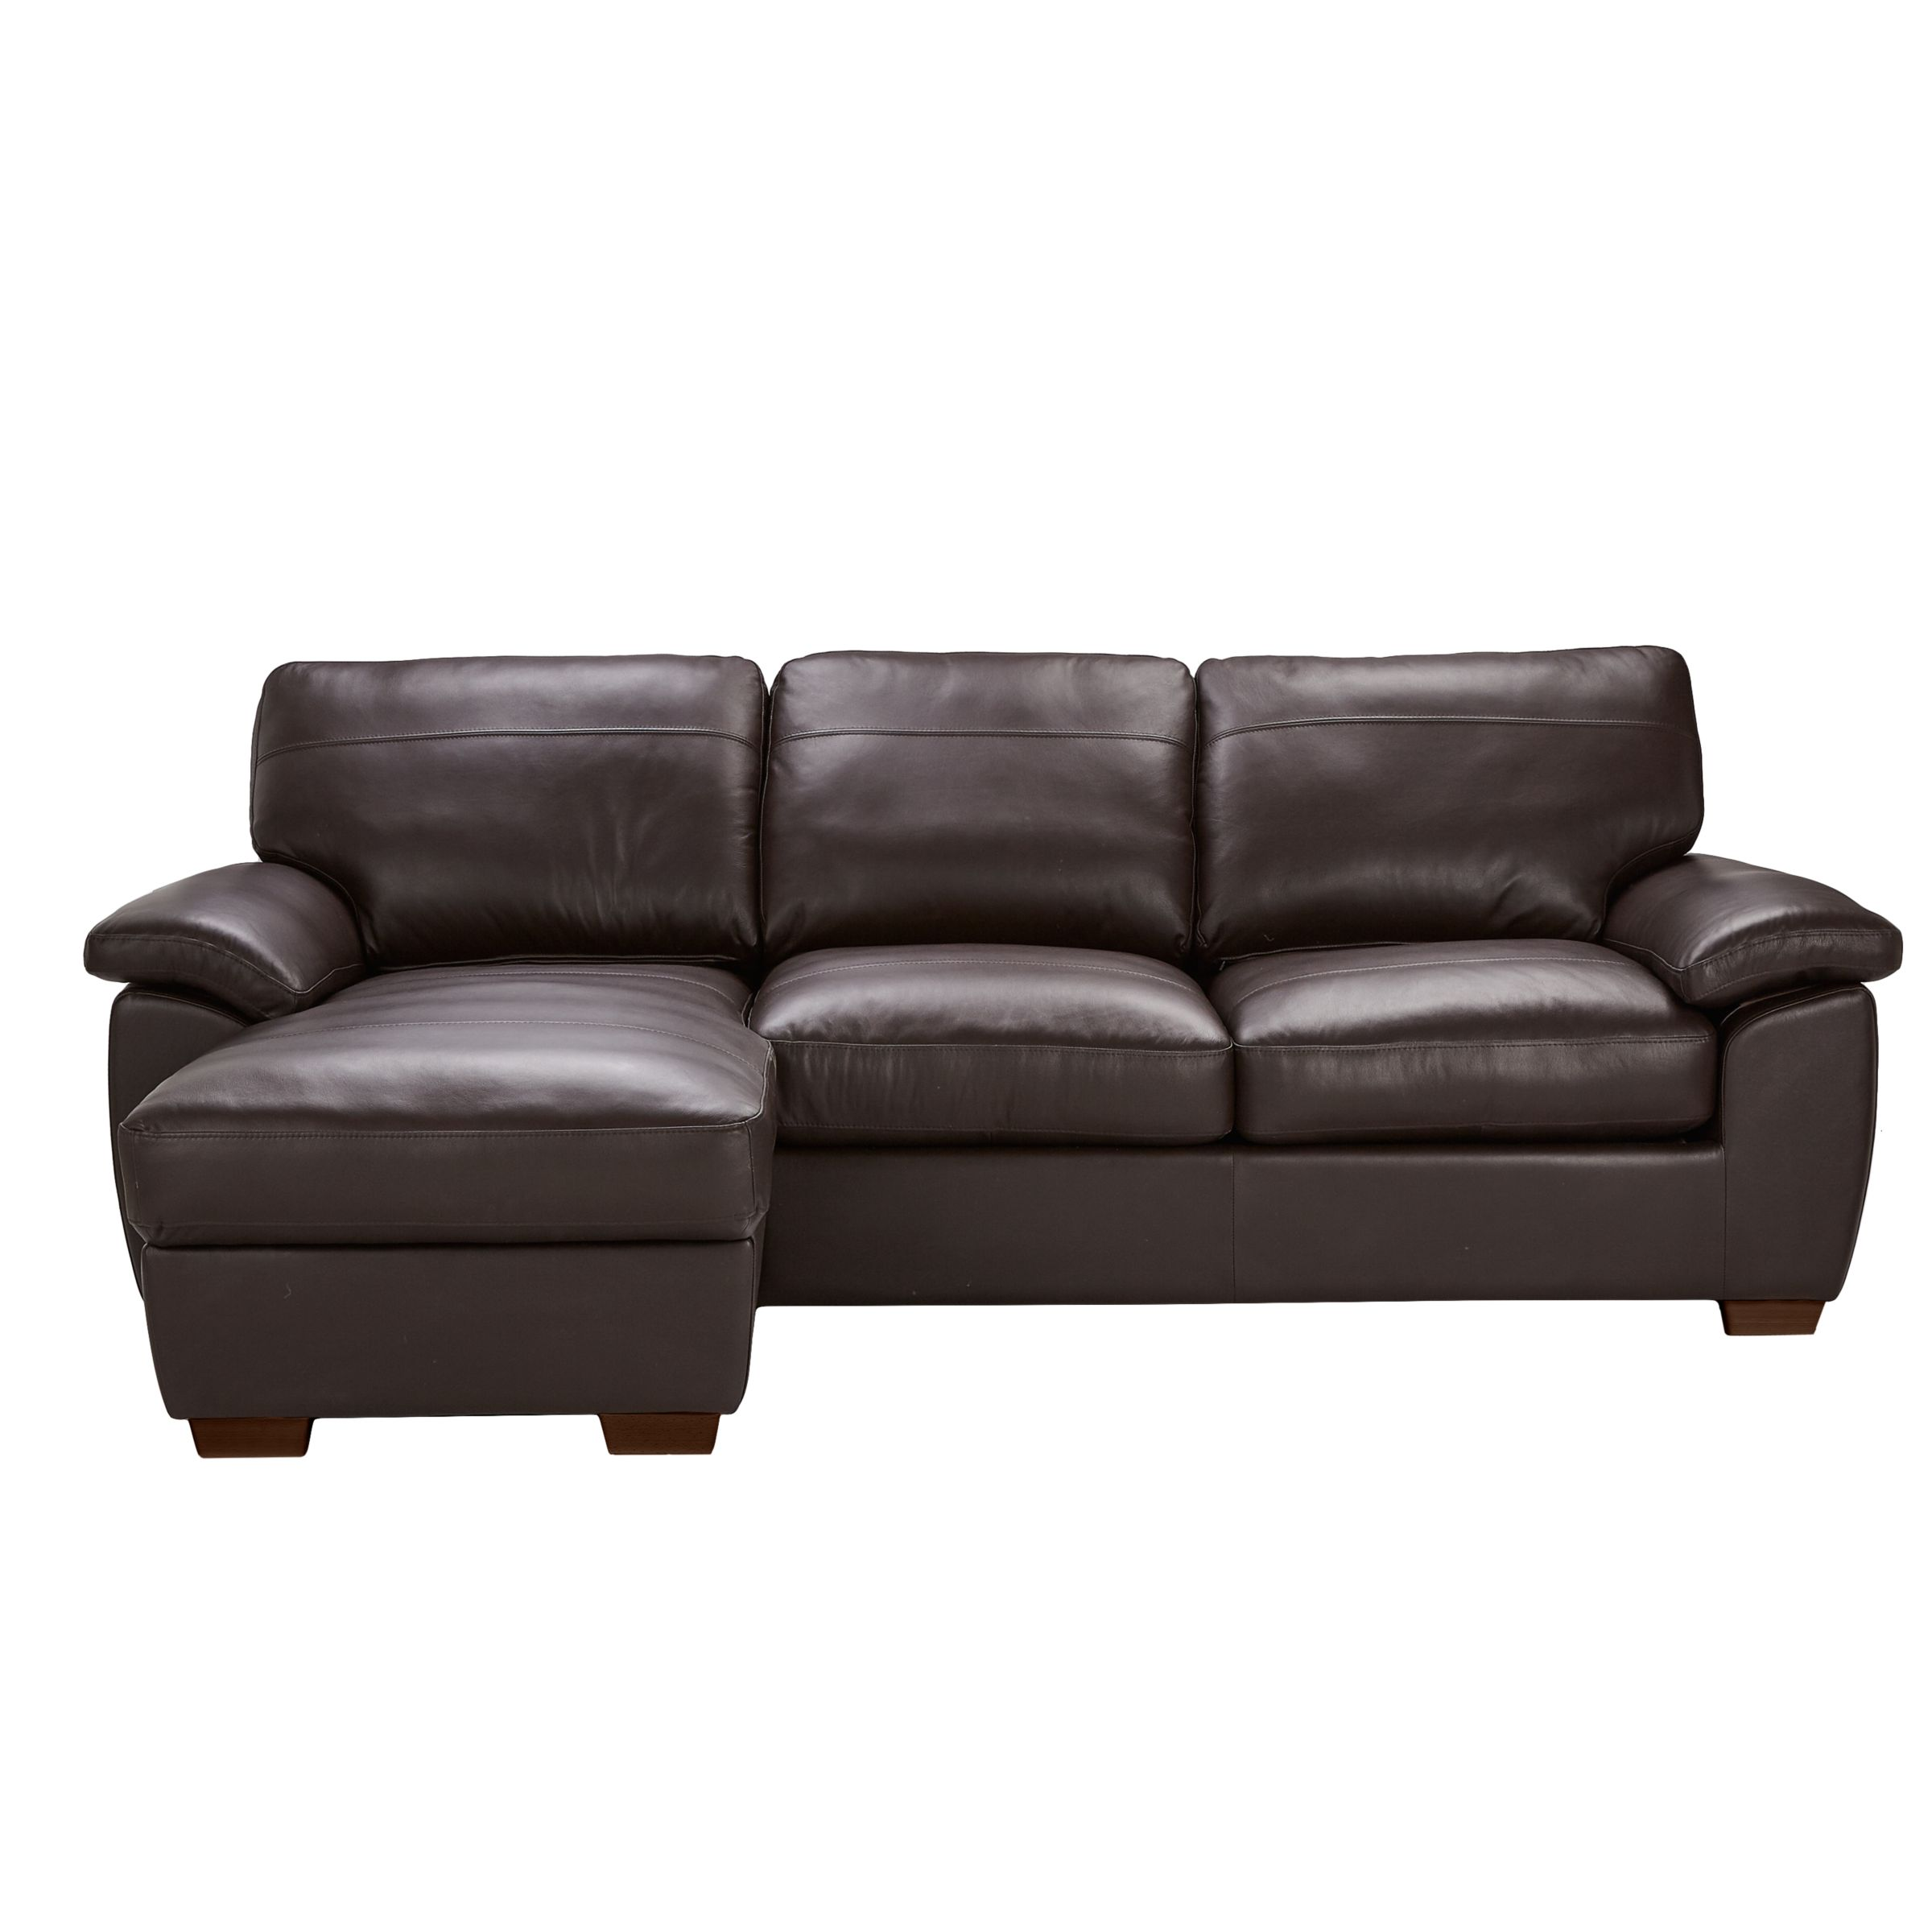 2 seater chaise sofa bed factory outlets uk 28 results thesofa